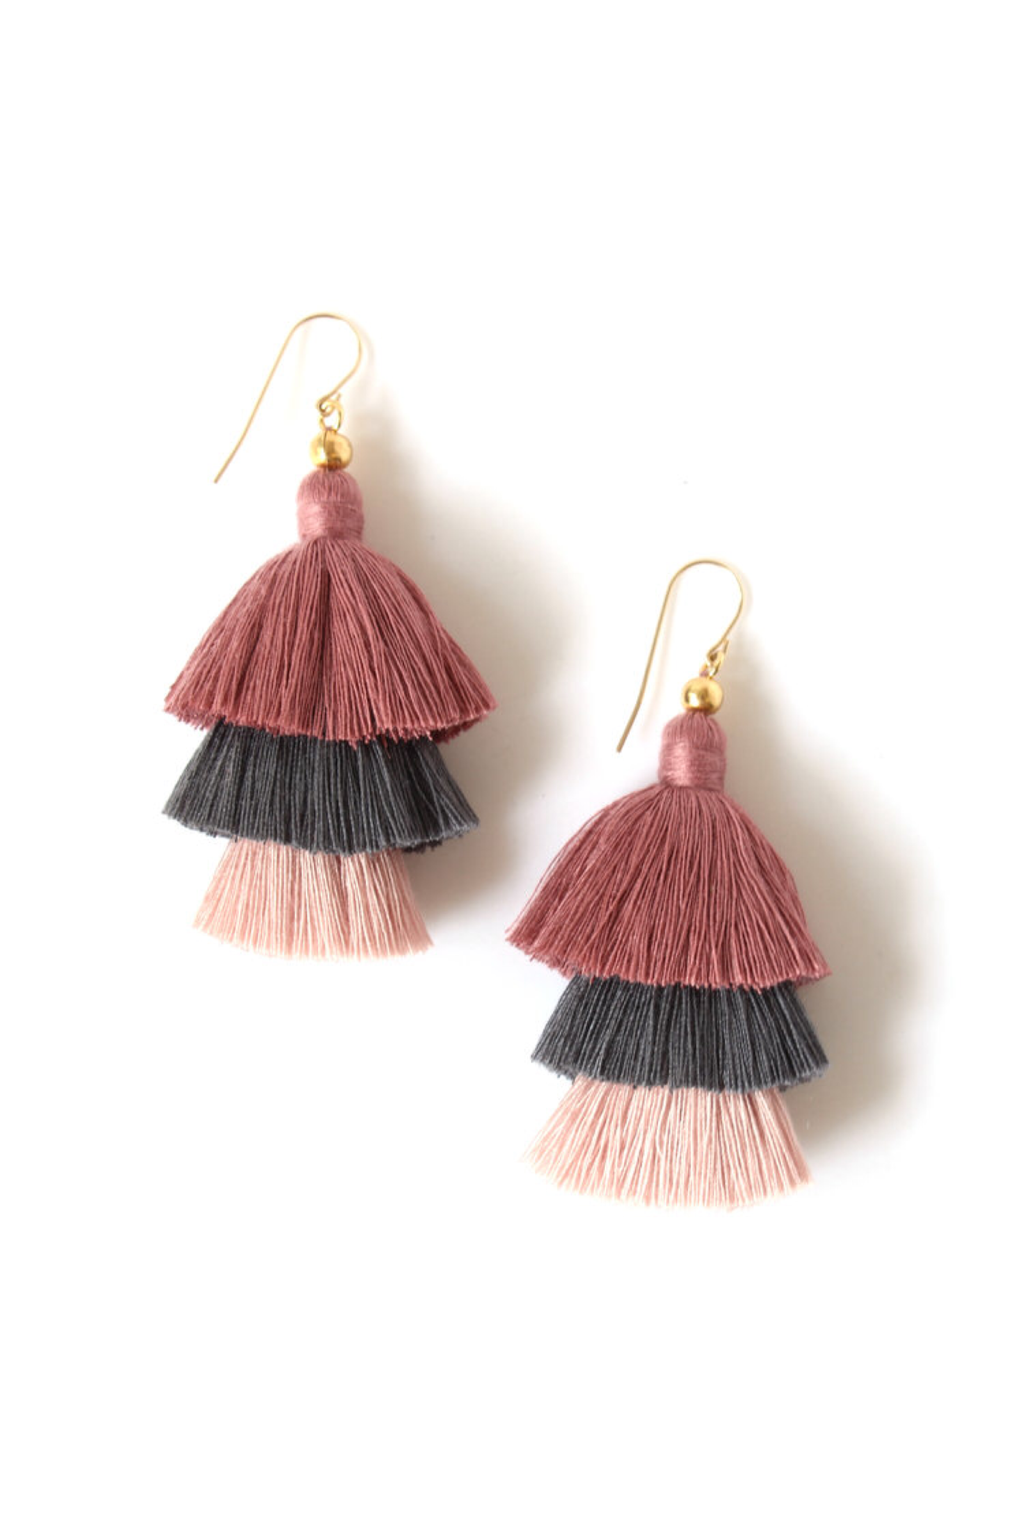 Blush Ombré Mary Tassel Earrings - ROSE MADE SHOP